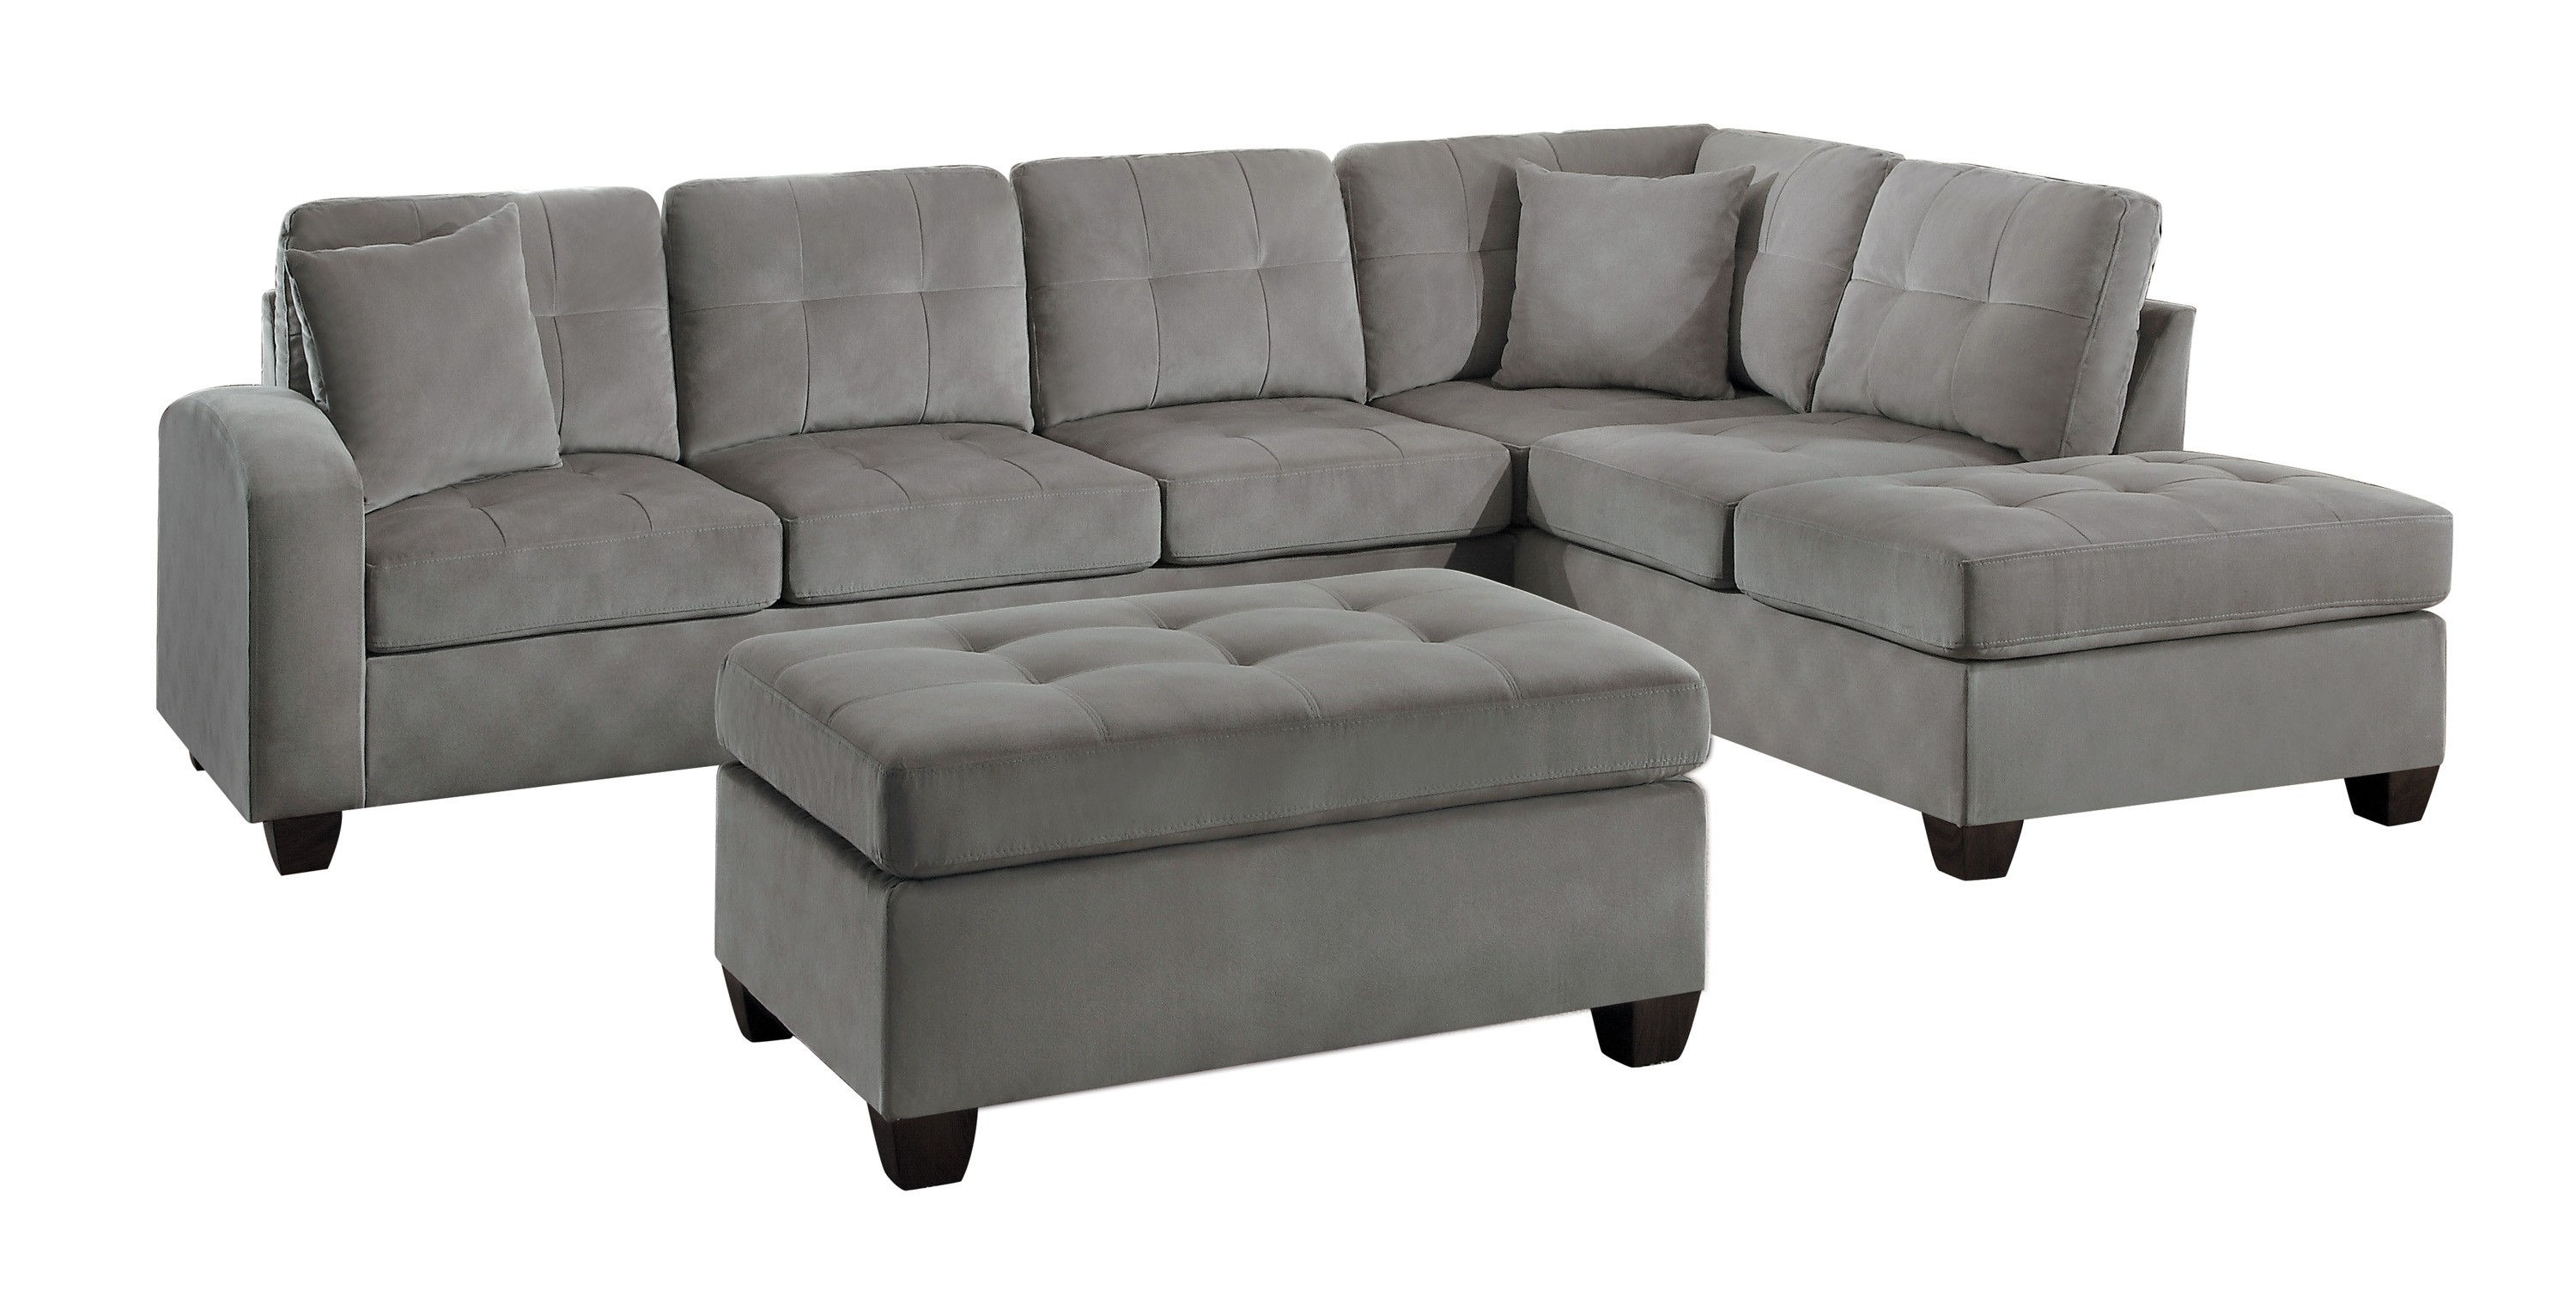 Strange Home Elegance Emilio Taupe 3Pc Sectional With Ottoman Onthecornerstone Fun Painted Chair Ideas Images Onthecornerstoneorg